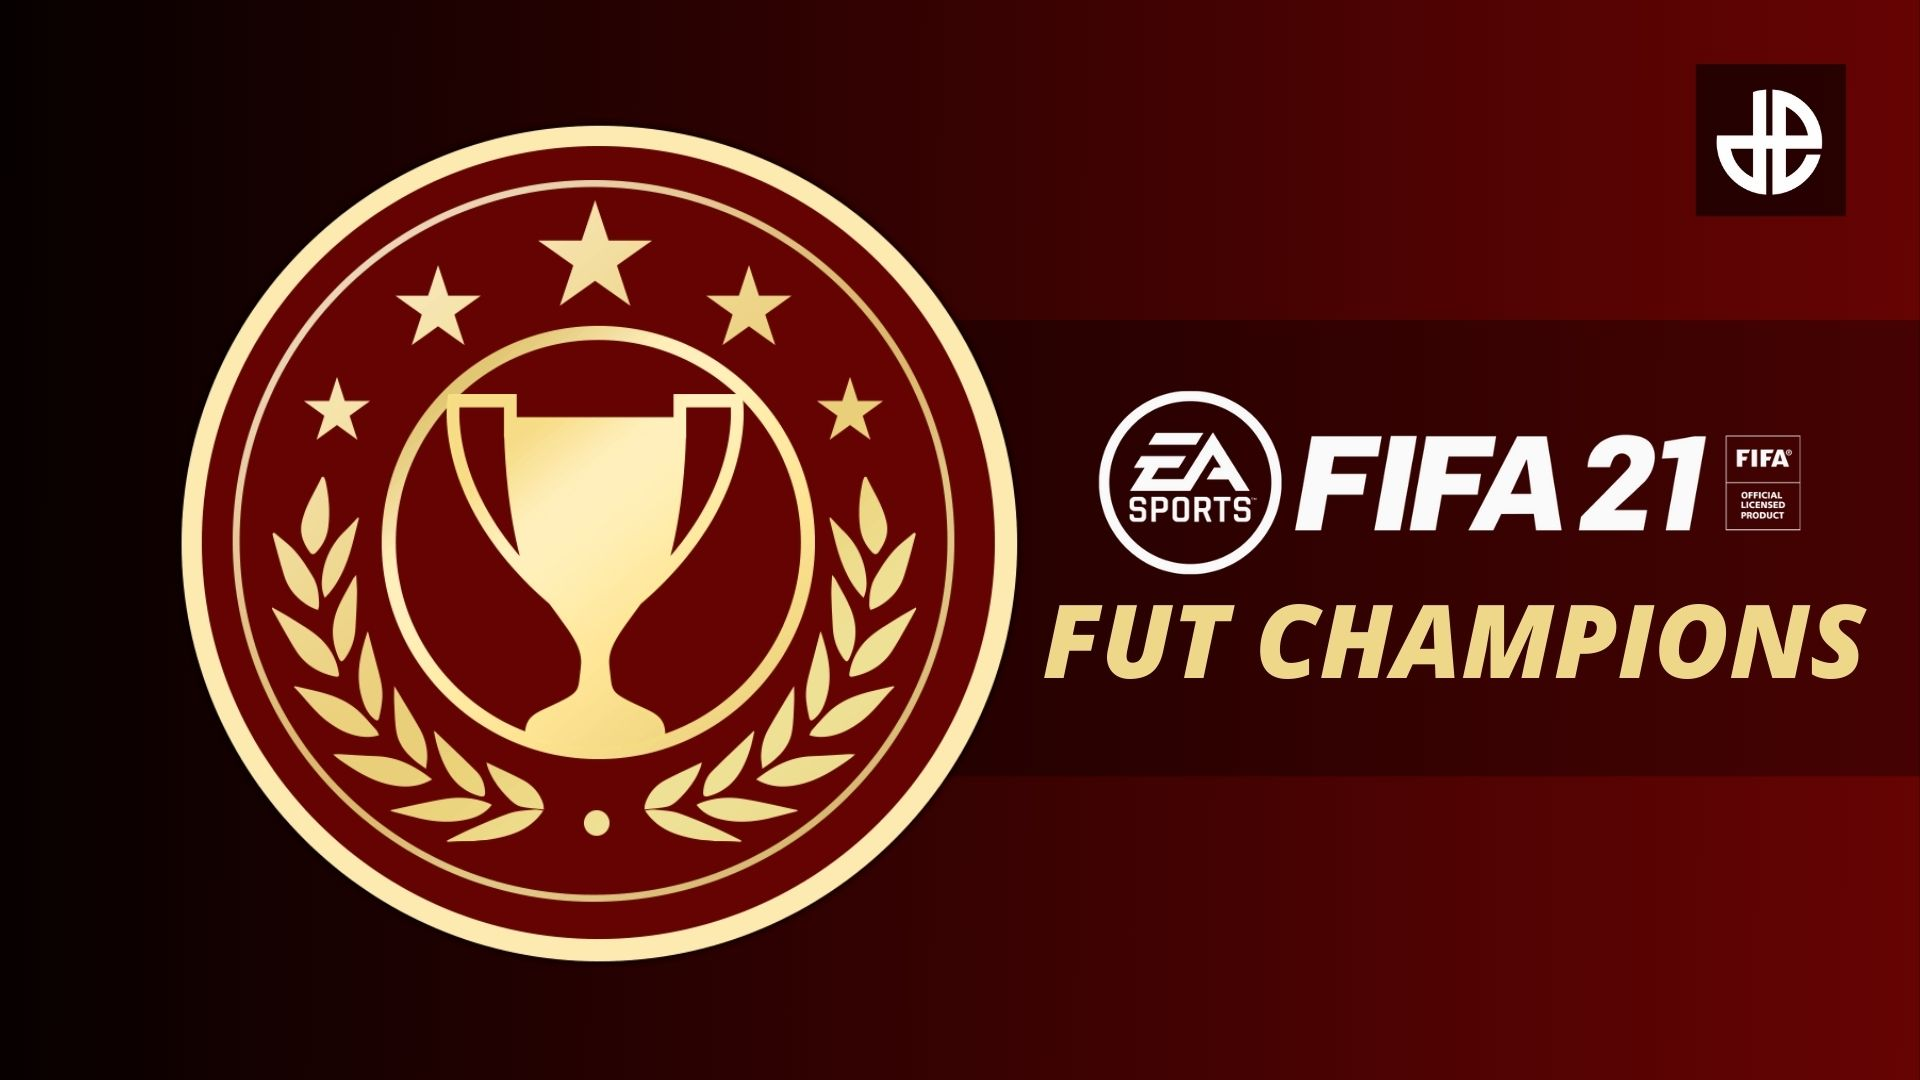 FIFA 21 Fut Champions Weekend League